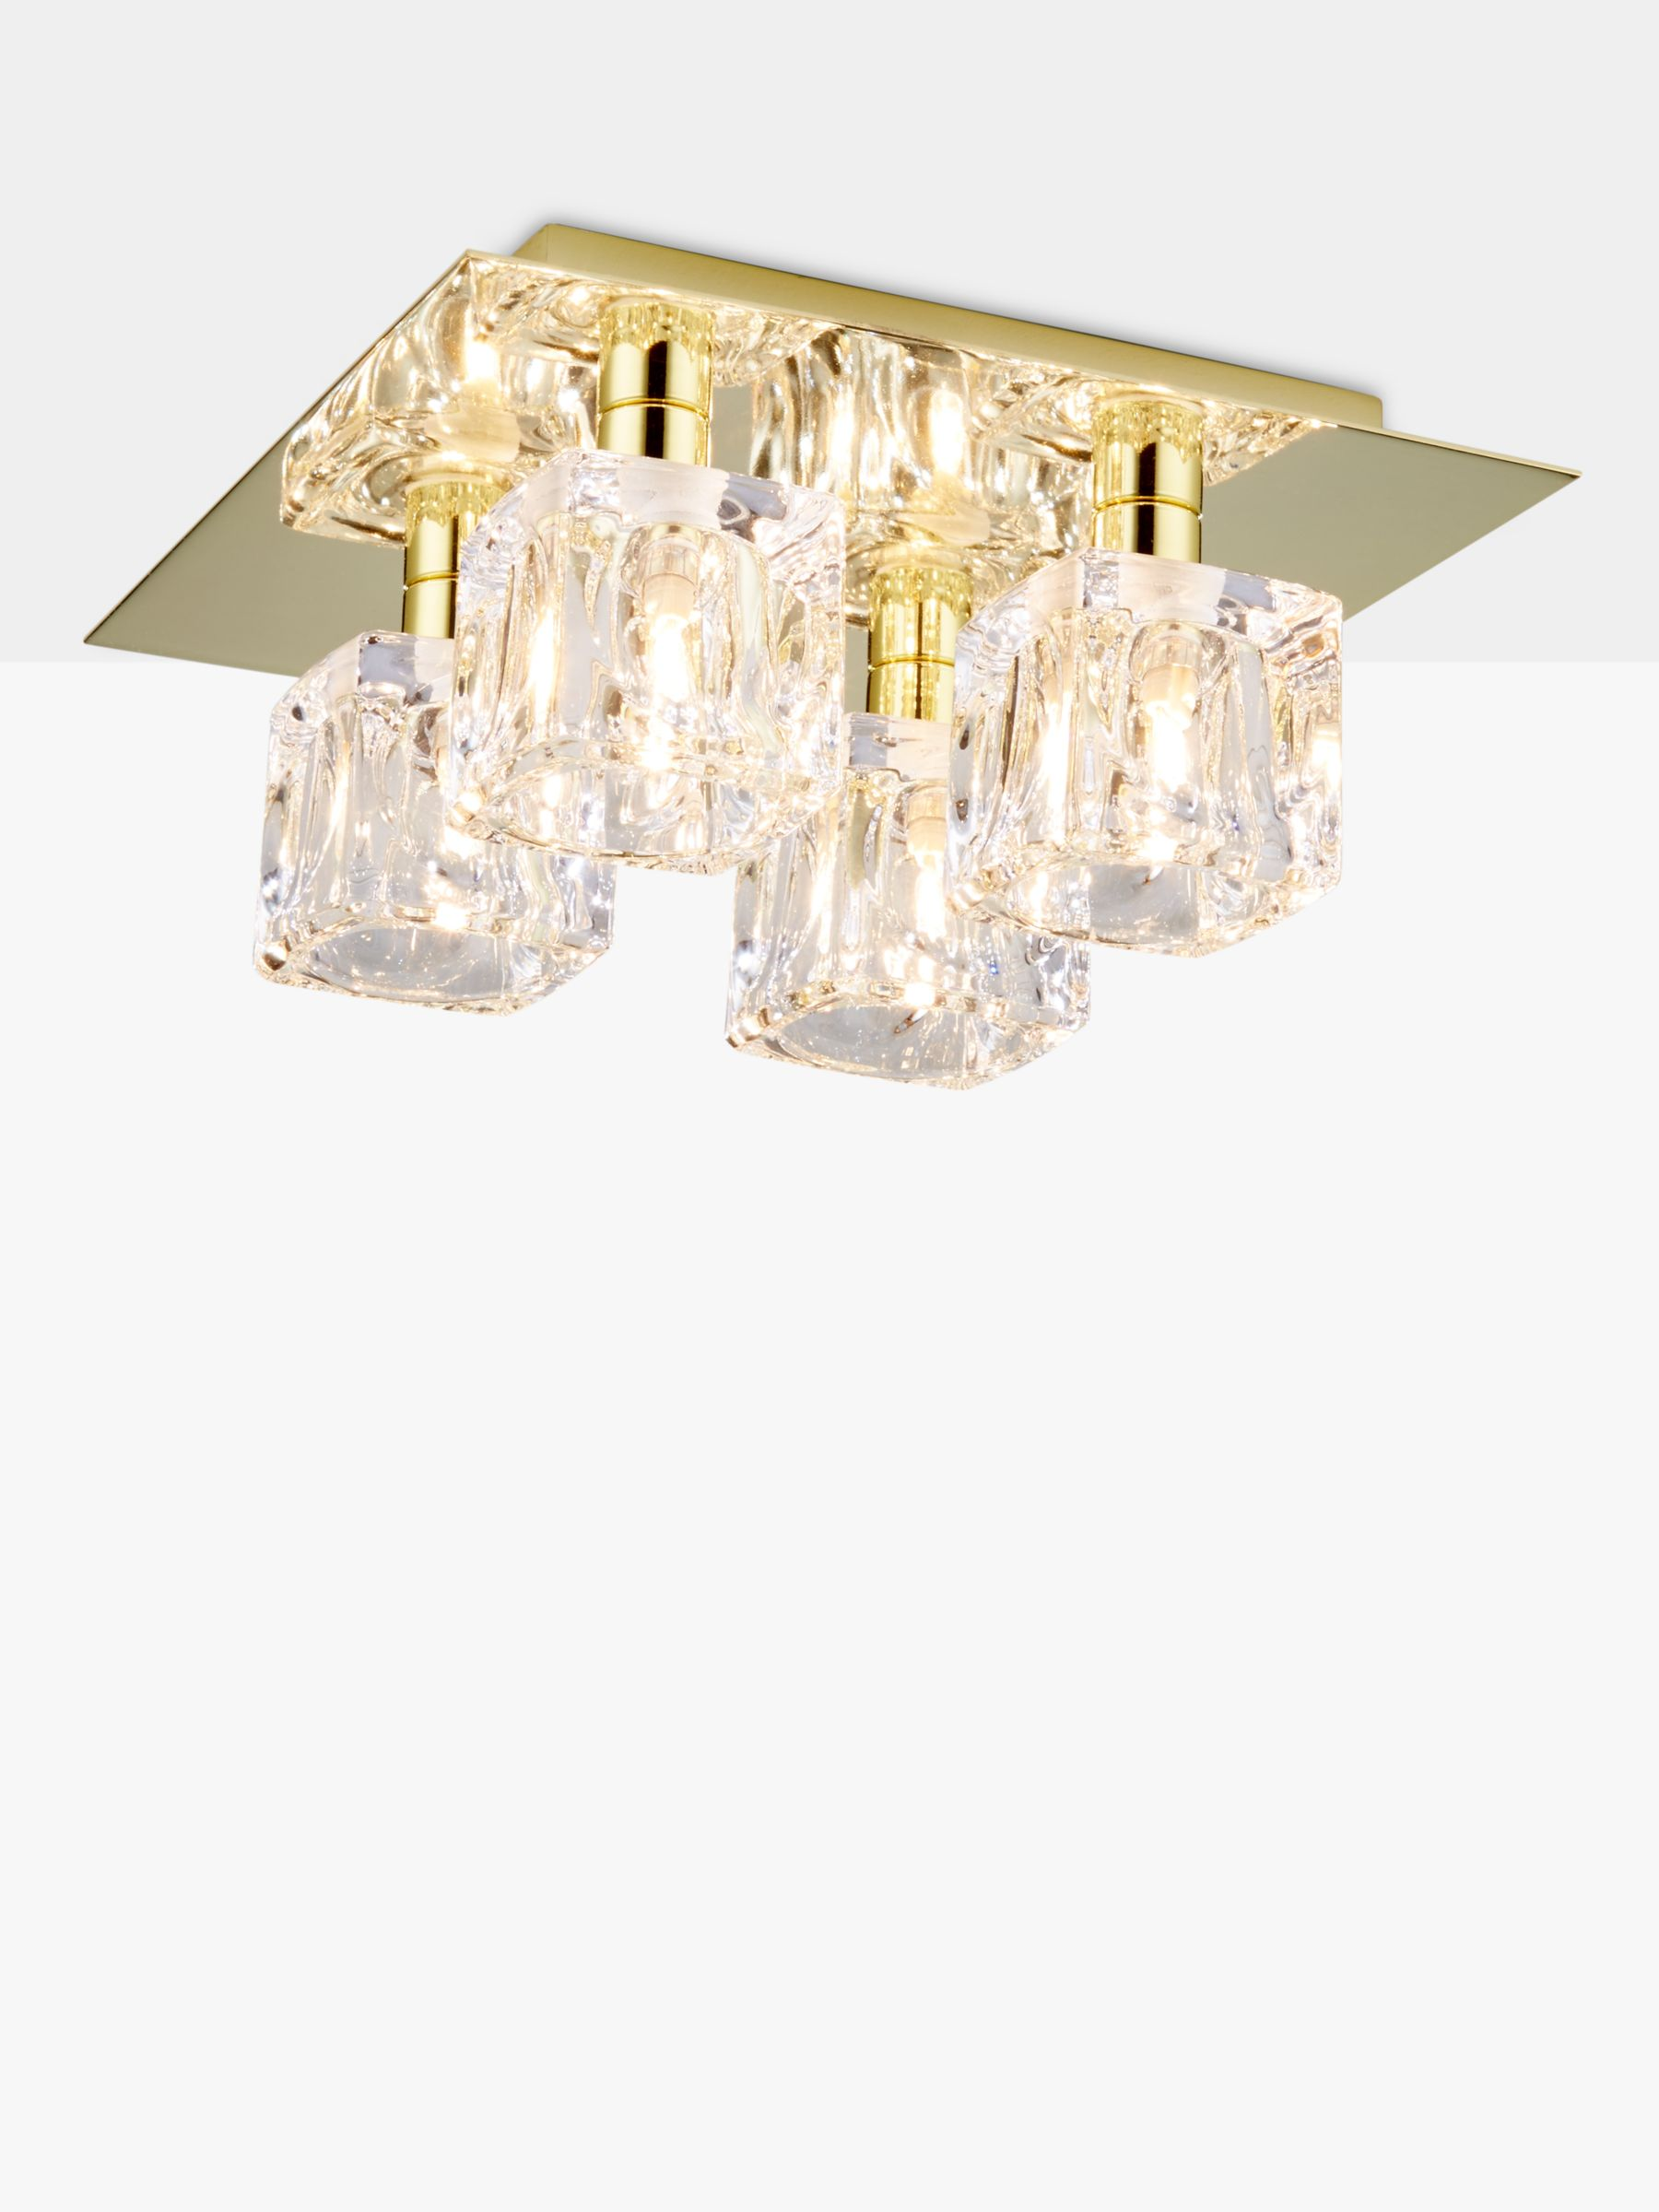 Alium Ceiling Light John Lewis : John lewis cuboid ceiling light octer ?